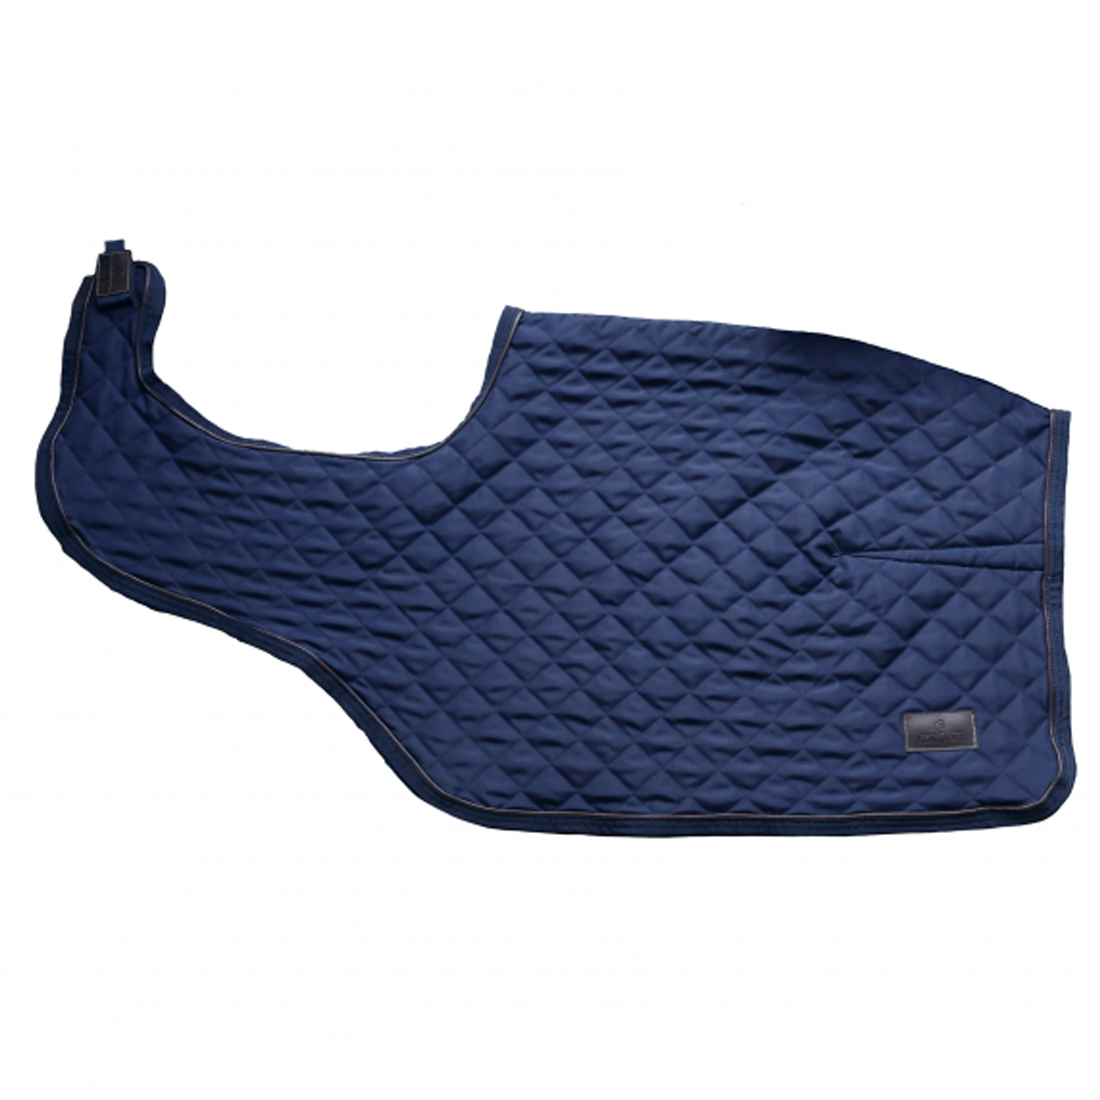 Kentucky Riding Rug 160gr